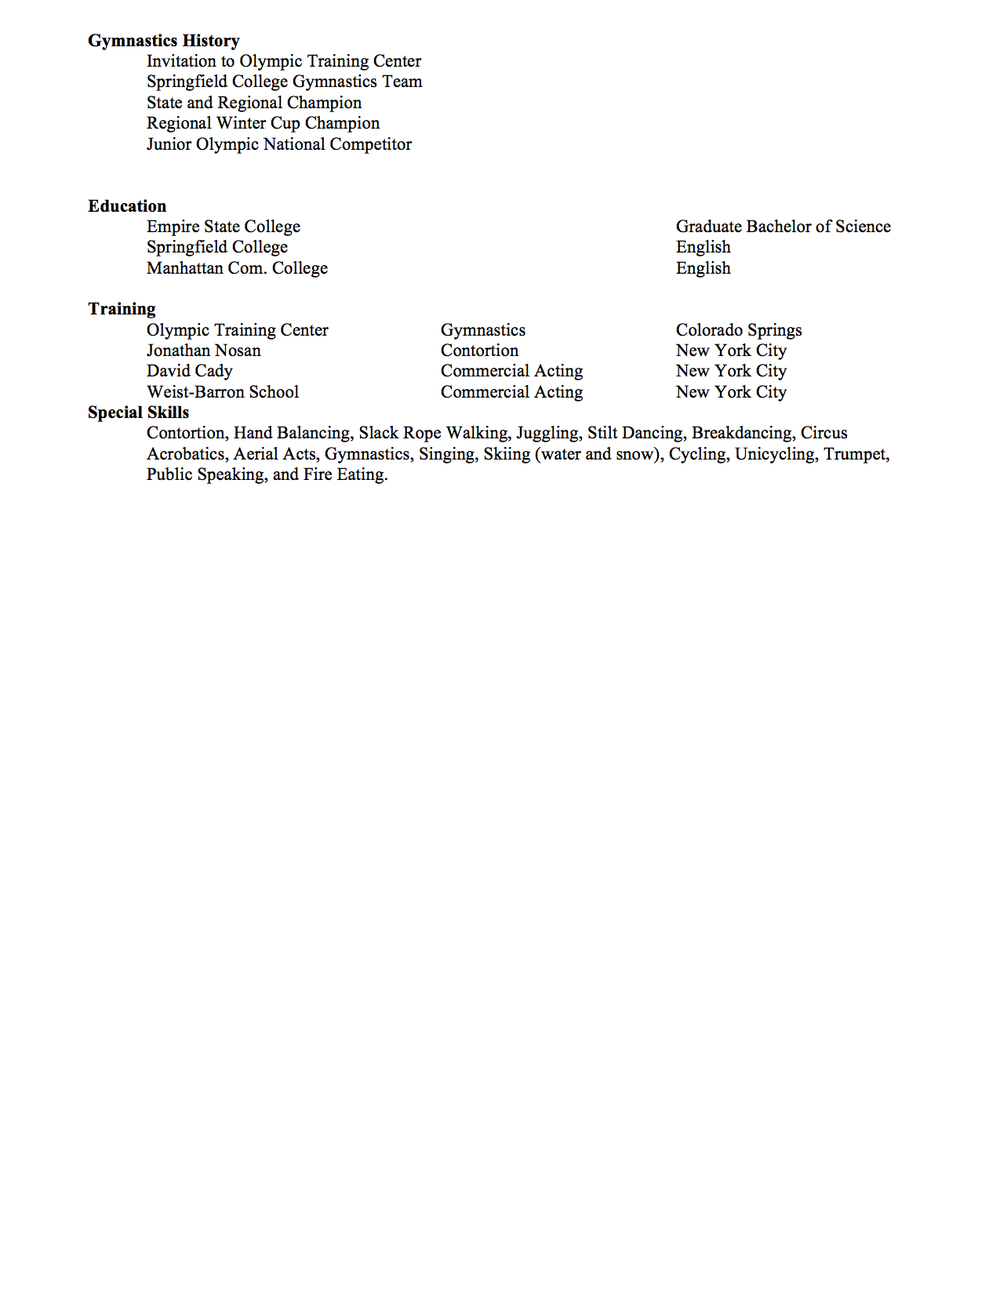 Joe Putignano Resume 2014New.jpg